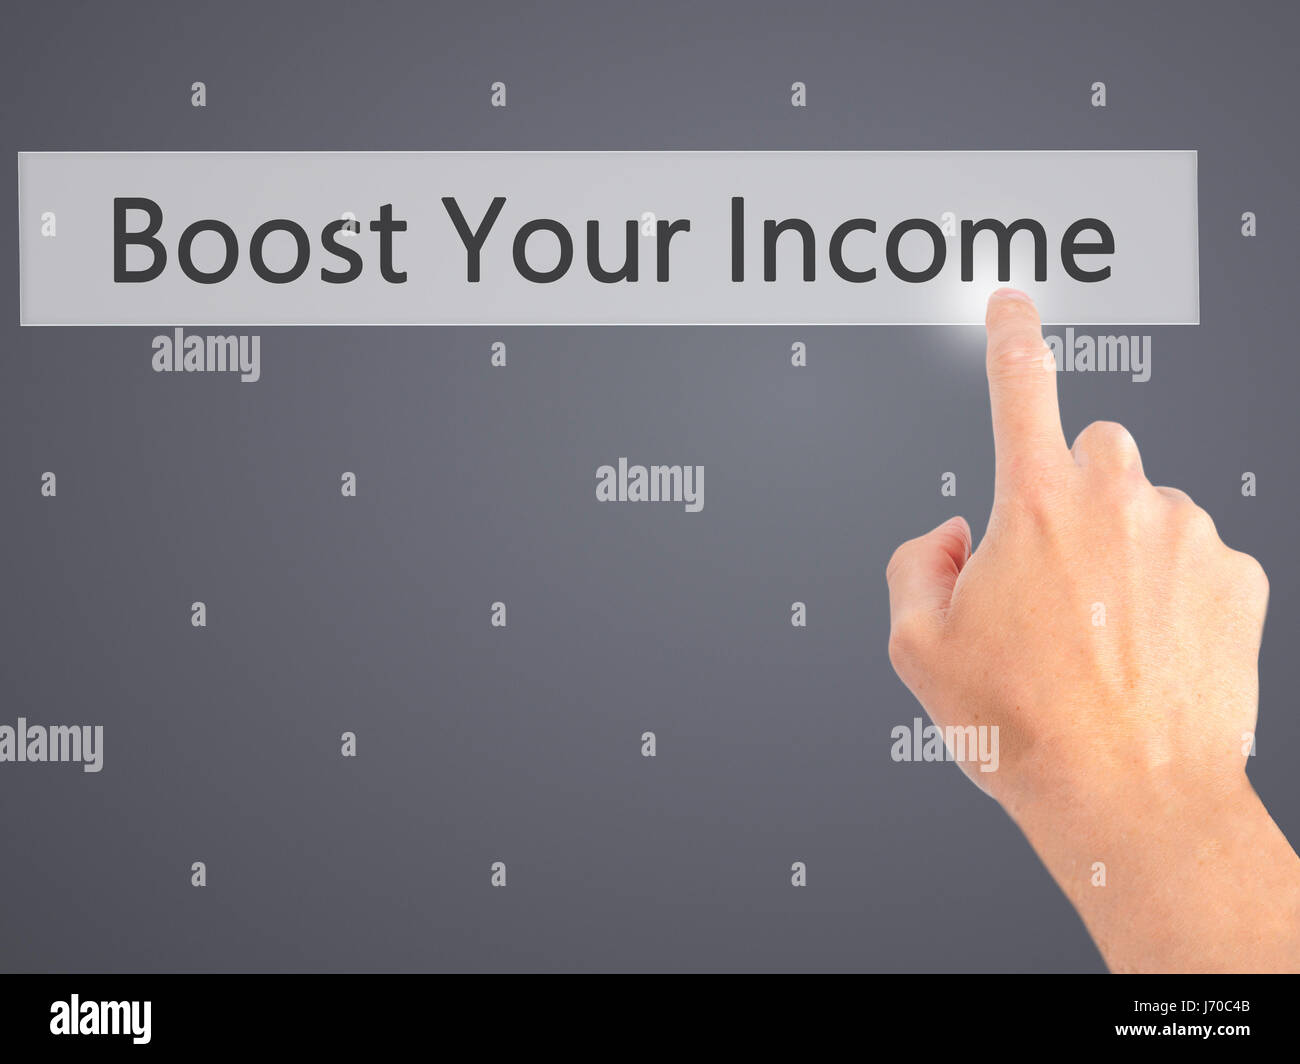 Boost Your Income - Hand pressing a button on blurred background concept . Business, technology, internet concept. - Stock Image